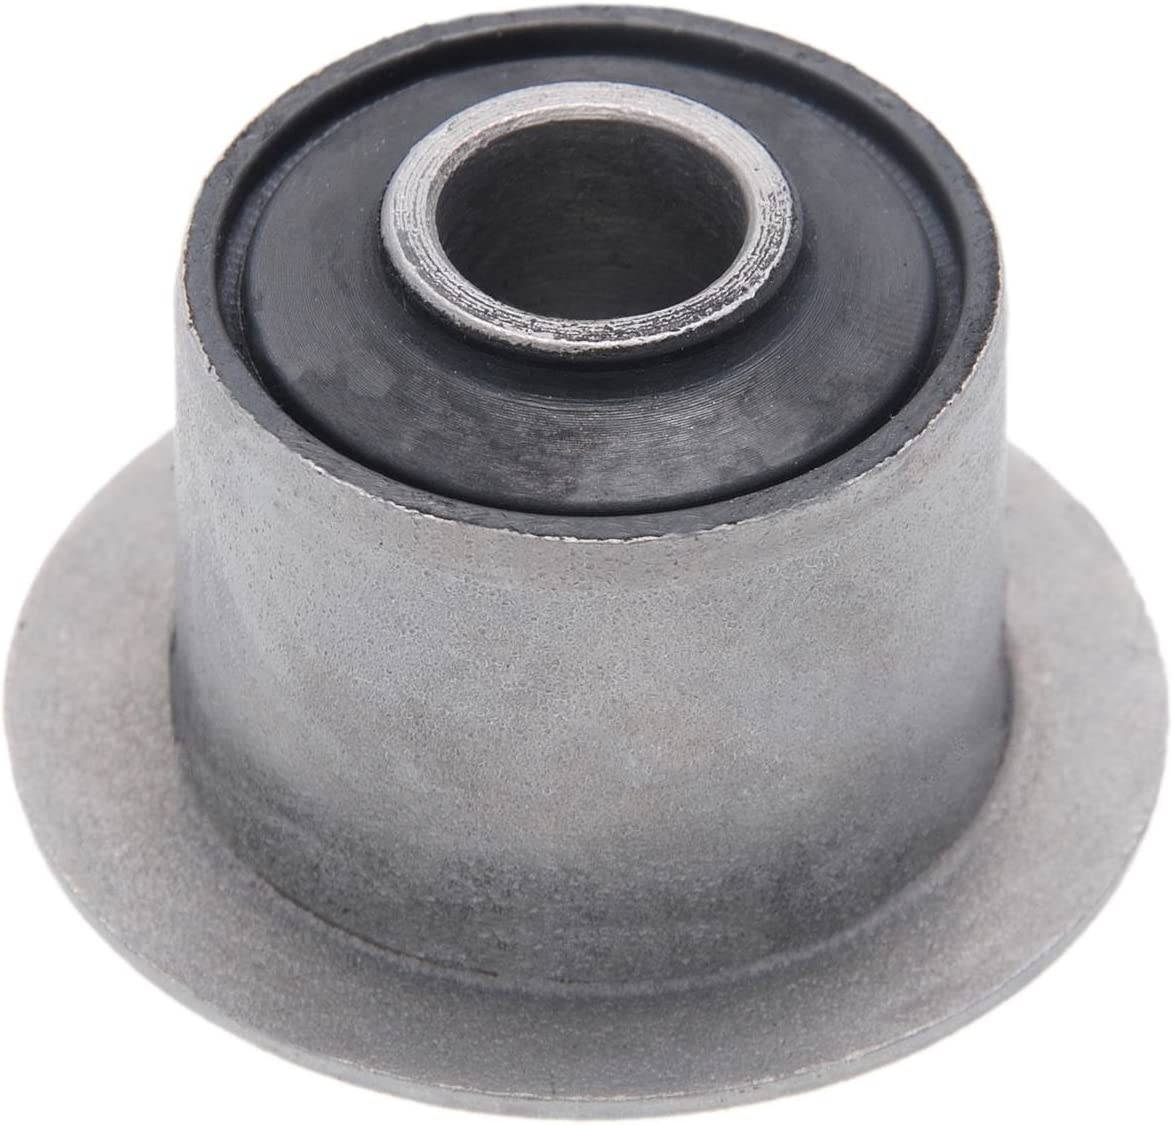 Arm Bushing 90389T0009 Febest for Rear Spring For Toyota